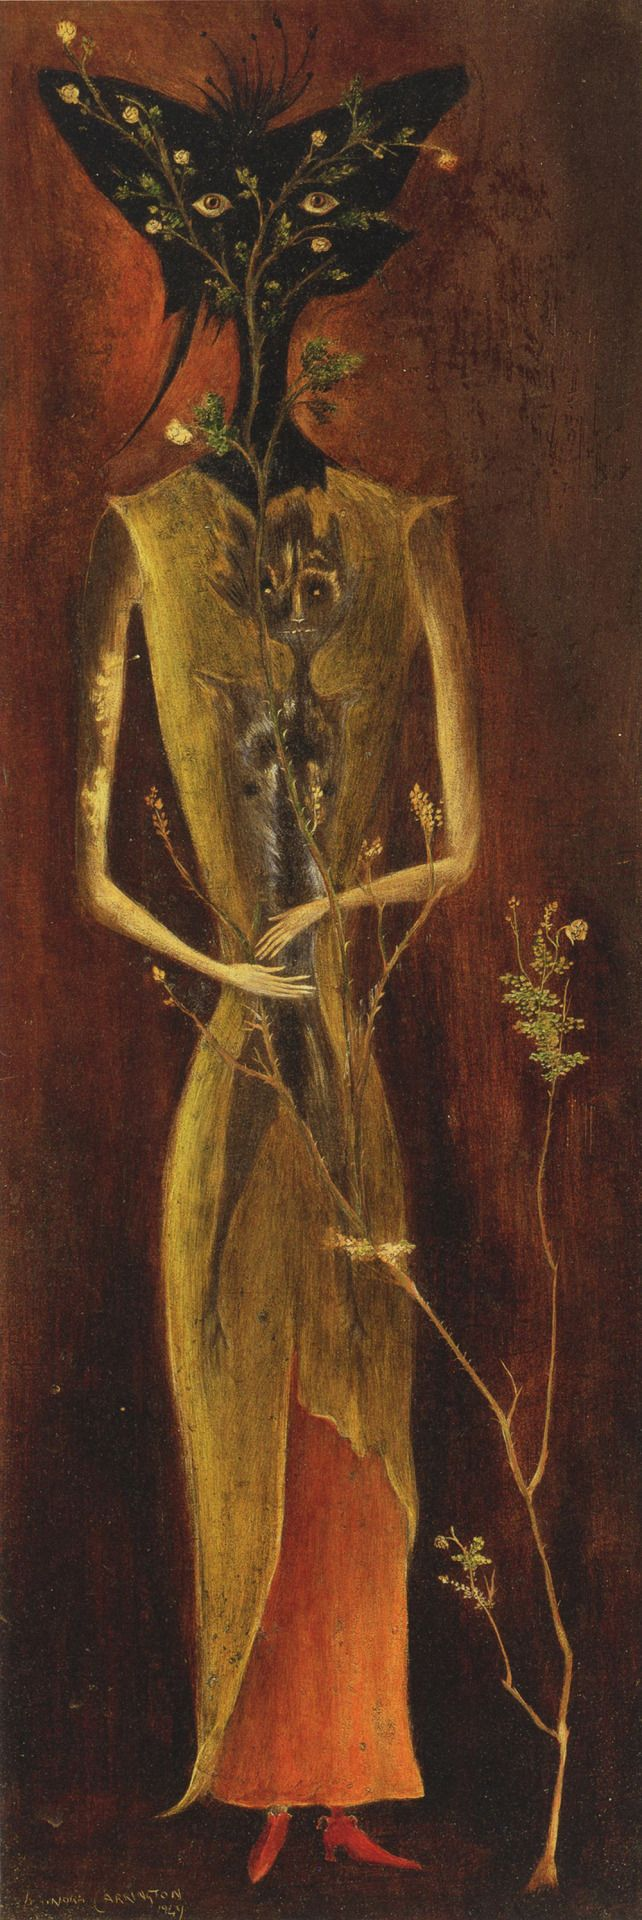 Portrait of Madame Dupin by Leonora Carrington